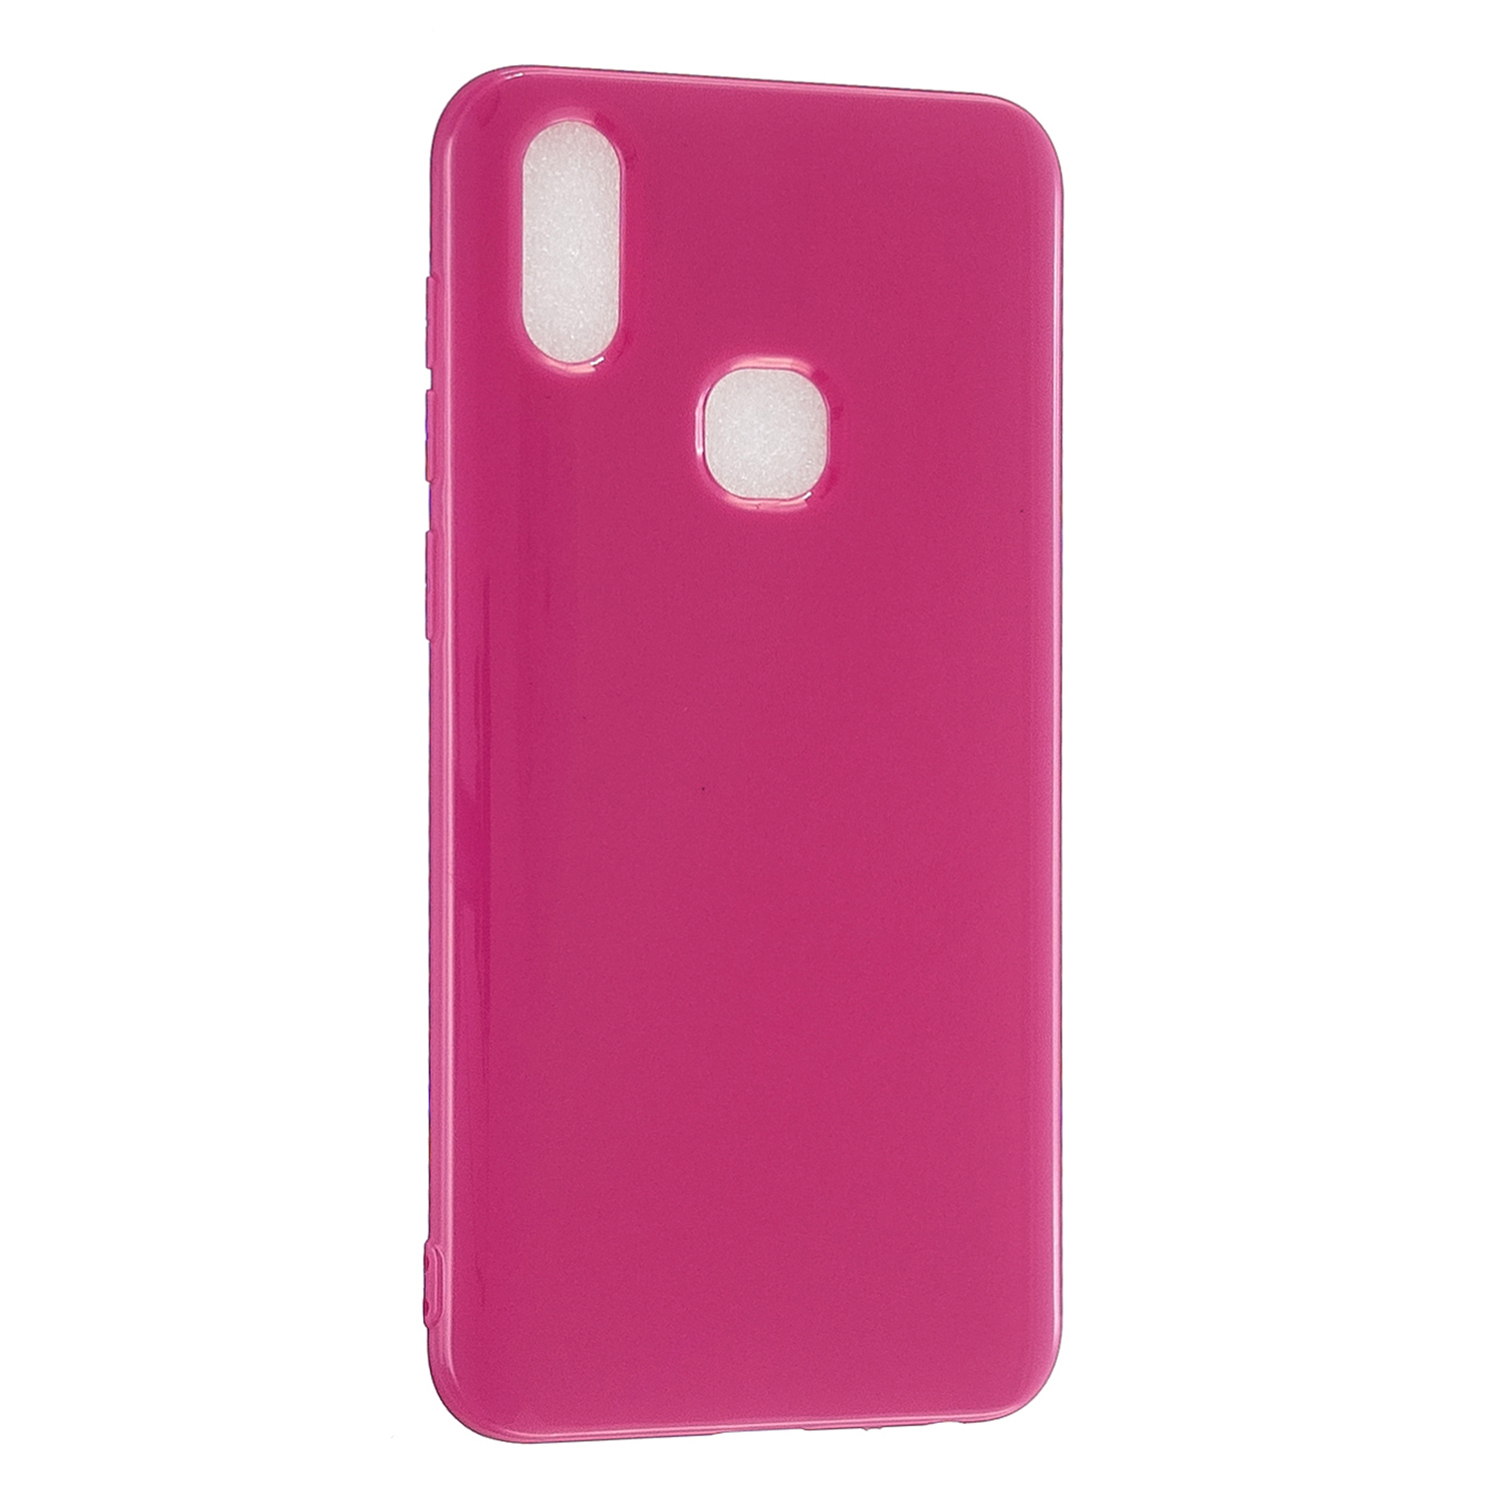 for VIVO Y17/Y3 / Y91/Y95/Y93 Thicken 2.0mm TPU Back Cover Cellphone Case Shell rose Red